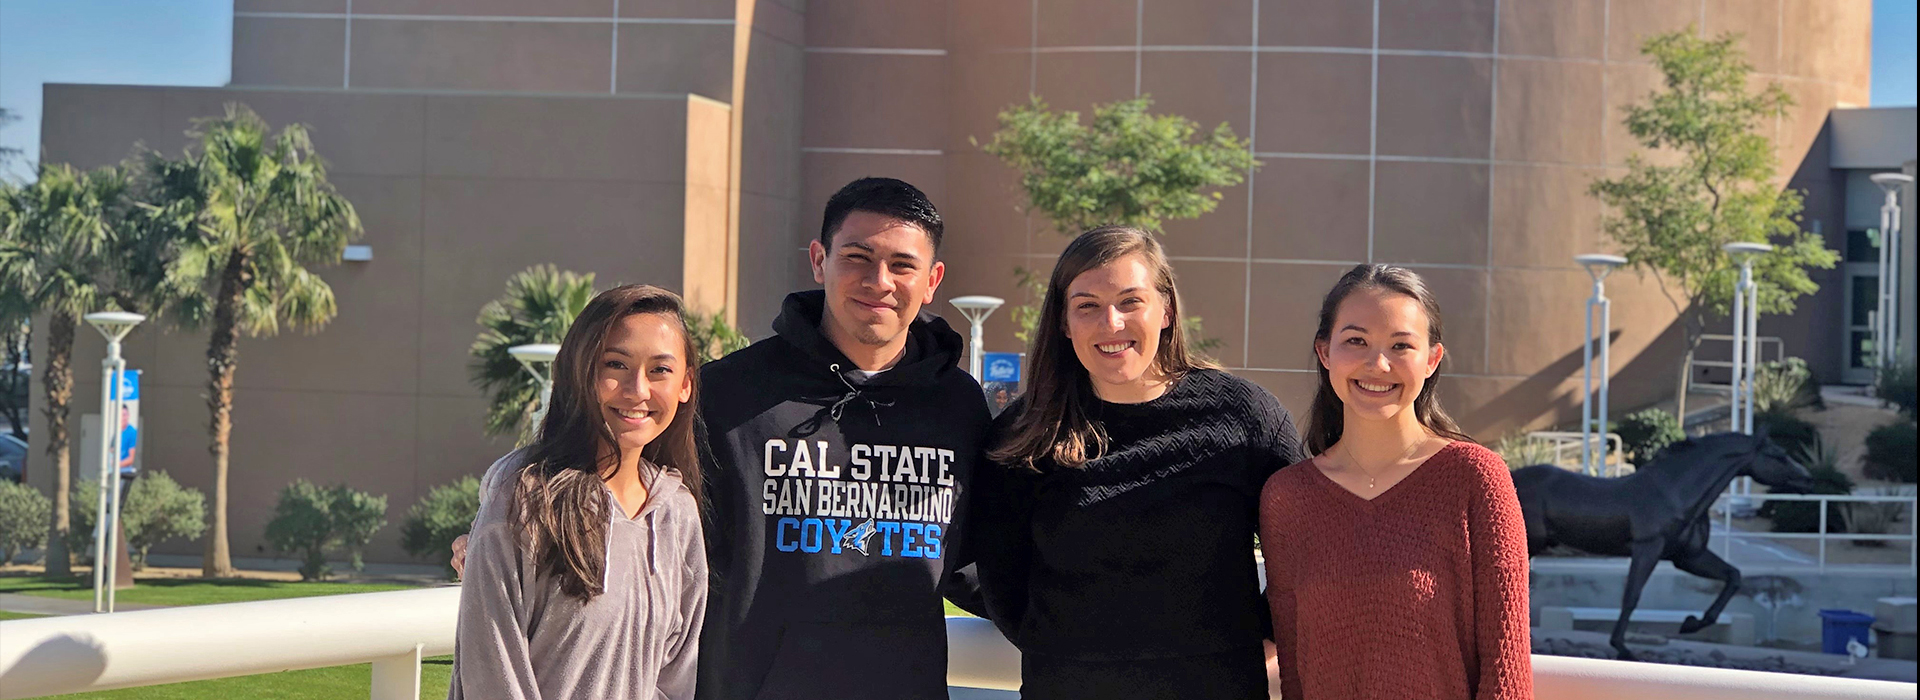 Representative of The Annexstad Family Foundation meets with CSUSB Palm Desert Campus students it supports through its Leaders of Tomorrow Scholarship